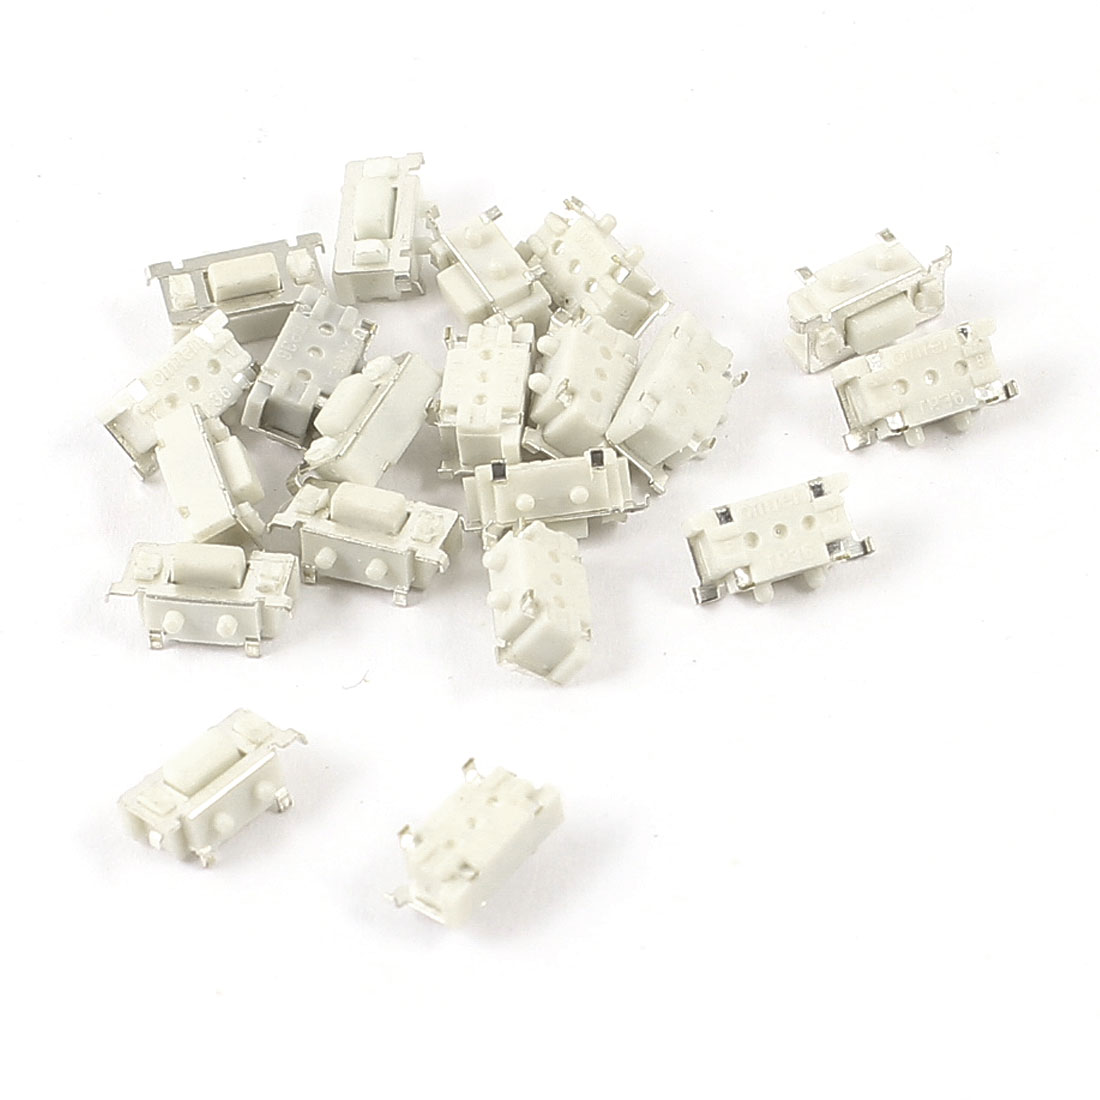 20pcs Momentary Rectangle Button SMD SPST Tactile Tact Switch 6mmx3mmx3.5mm